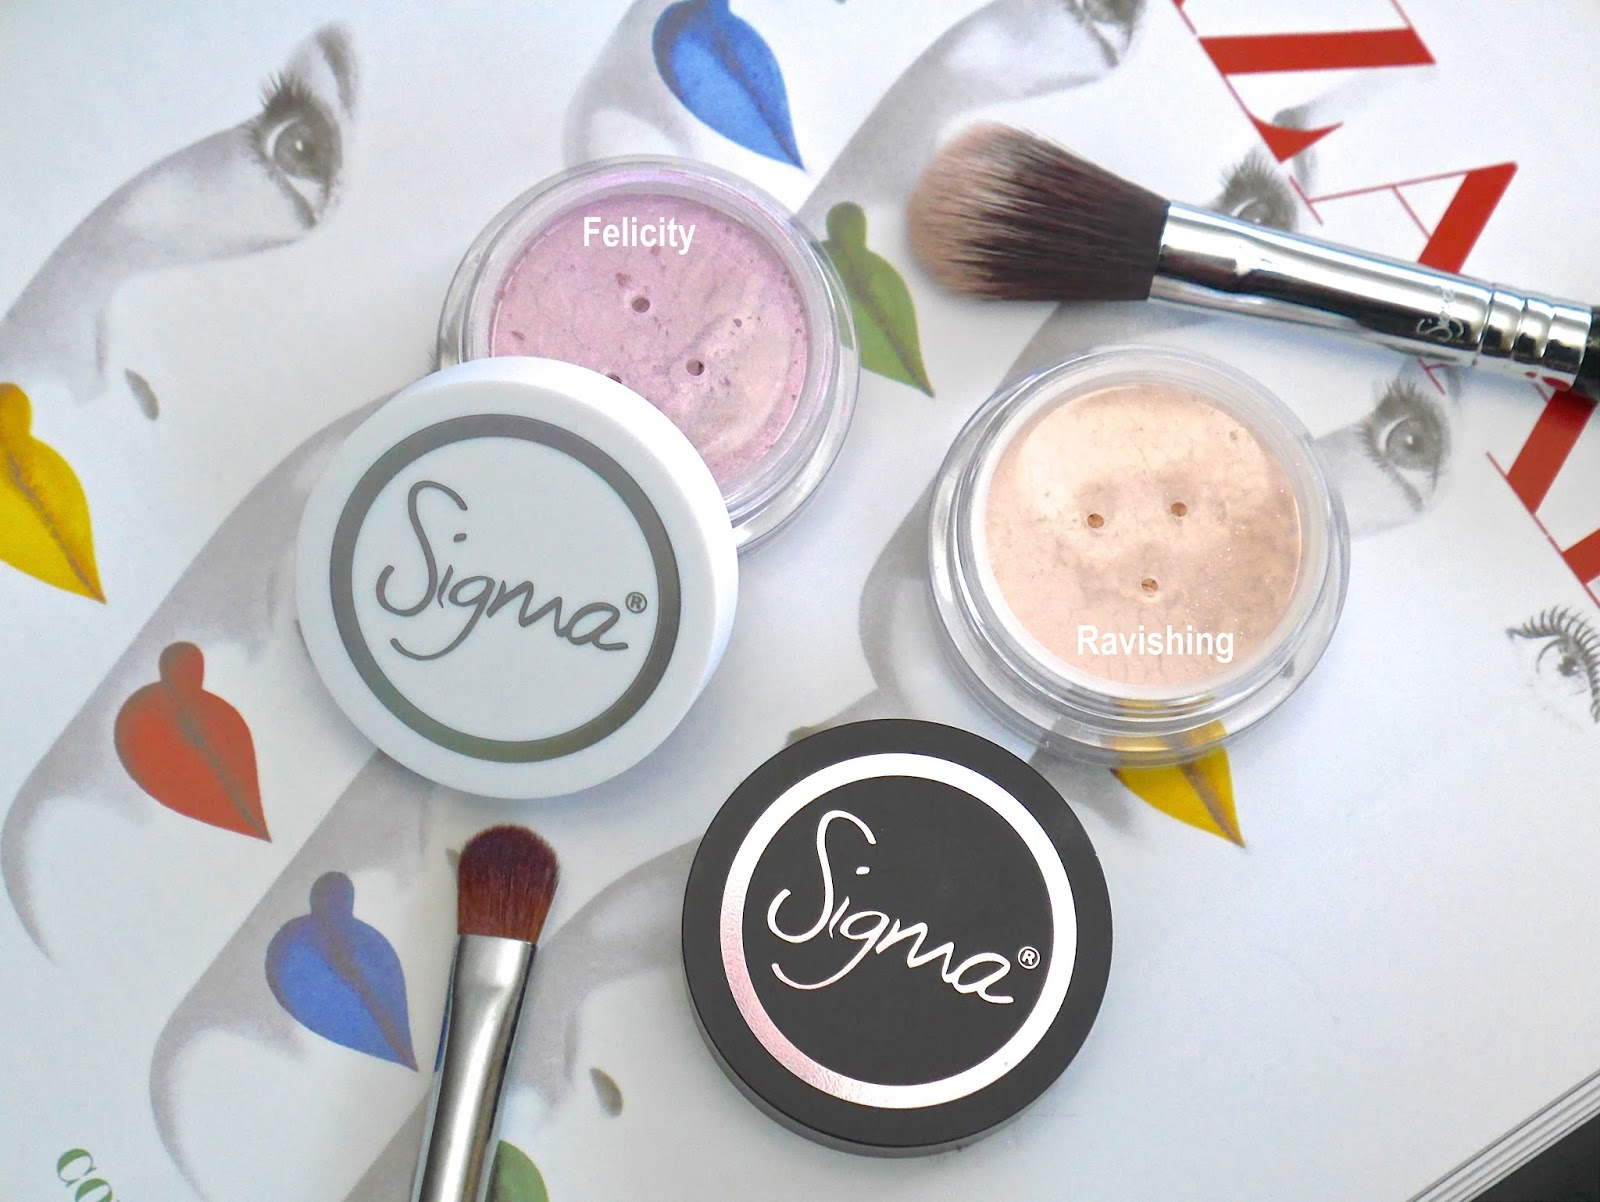 canadianbeauty, bbloggers, bbloggersCA, beauty, makeup, sigma